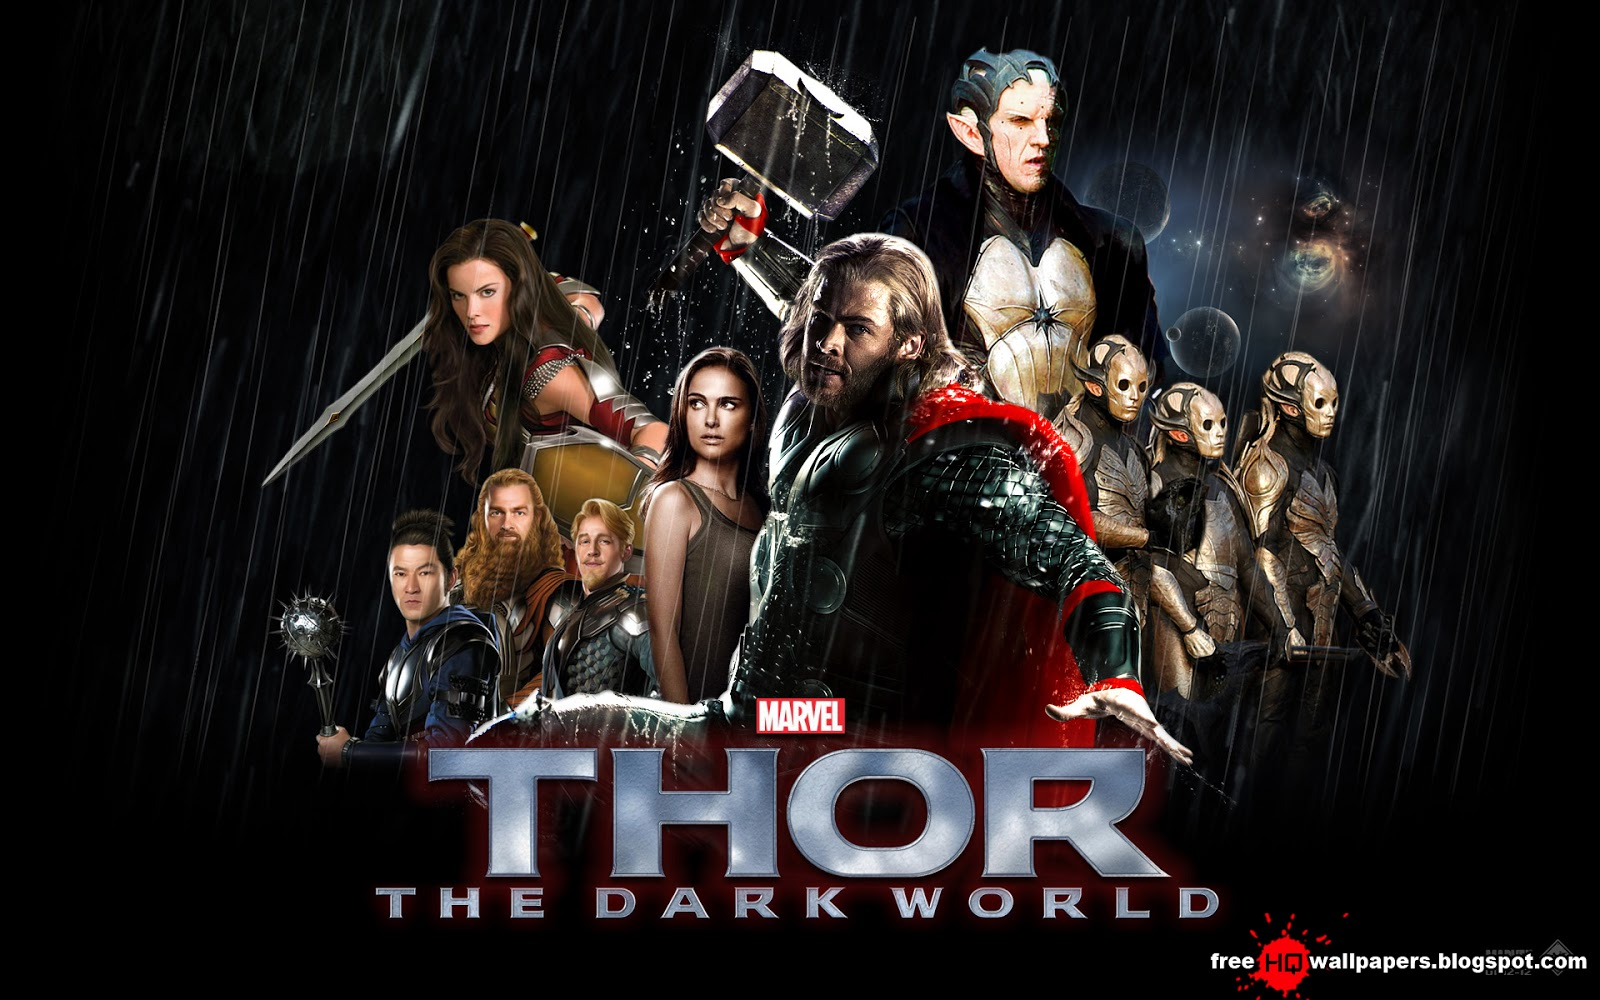 http://2.bp.blogspot.com/-23IuDV9hpAI/URpGuGriHNI/AAAAAAAACiI/XYK3OKhK4ZE/s1600/Thor+The+Dark+World+HD+Wallpapers%7Bfreehqwallpapers.blogspot.com%7D.jpg